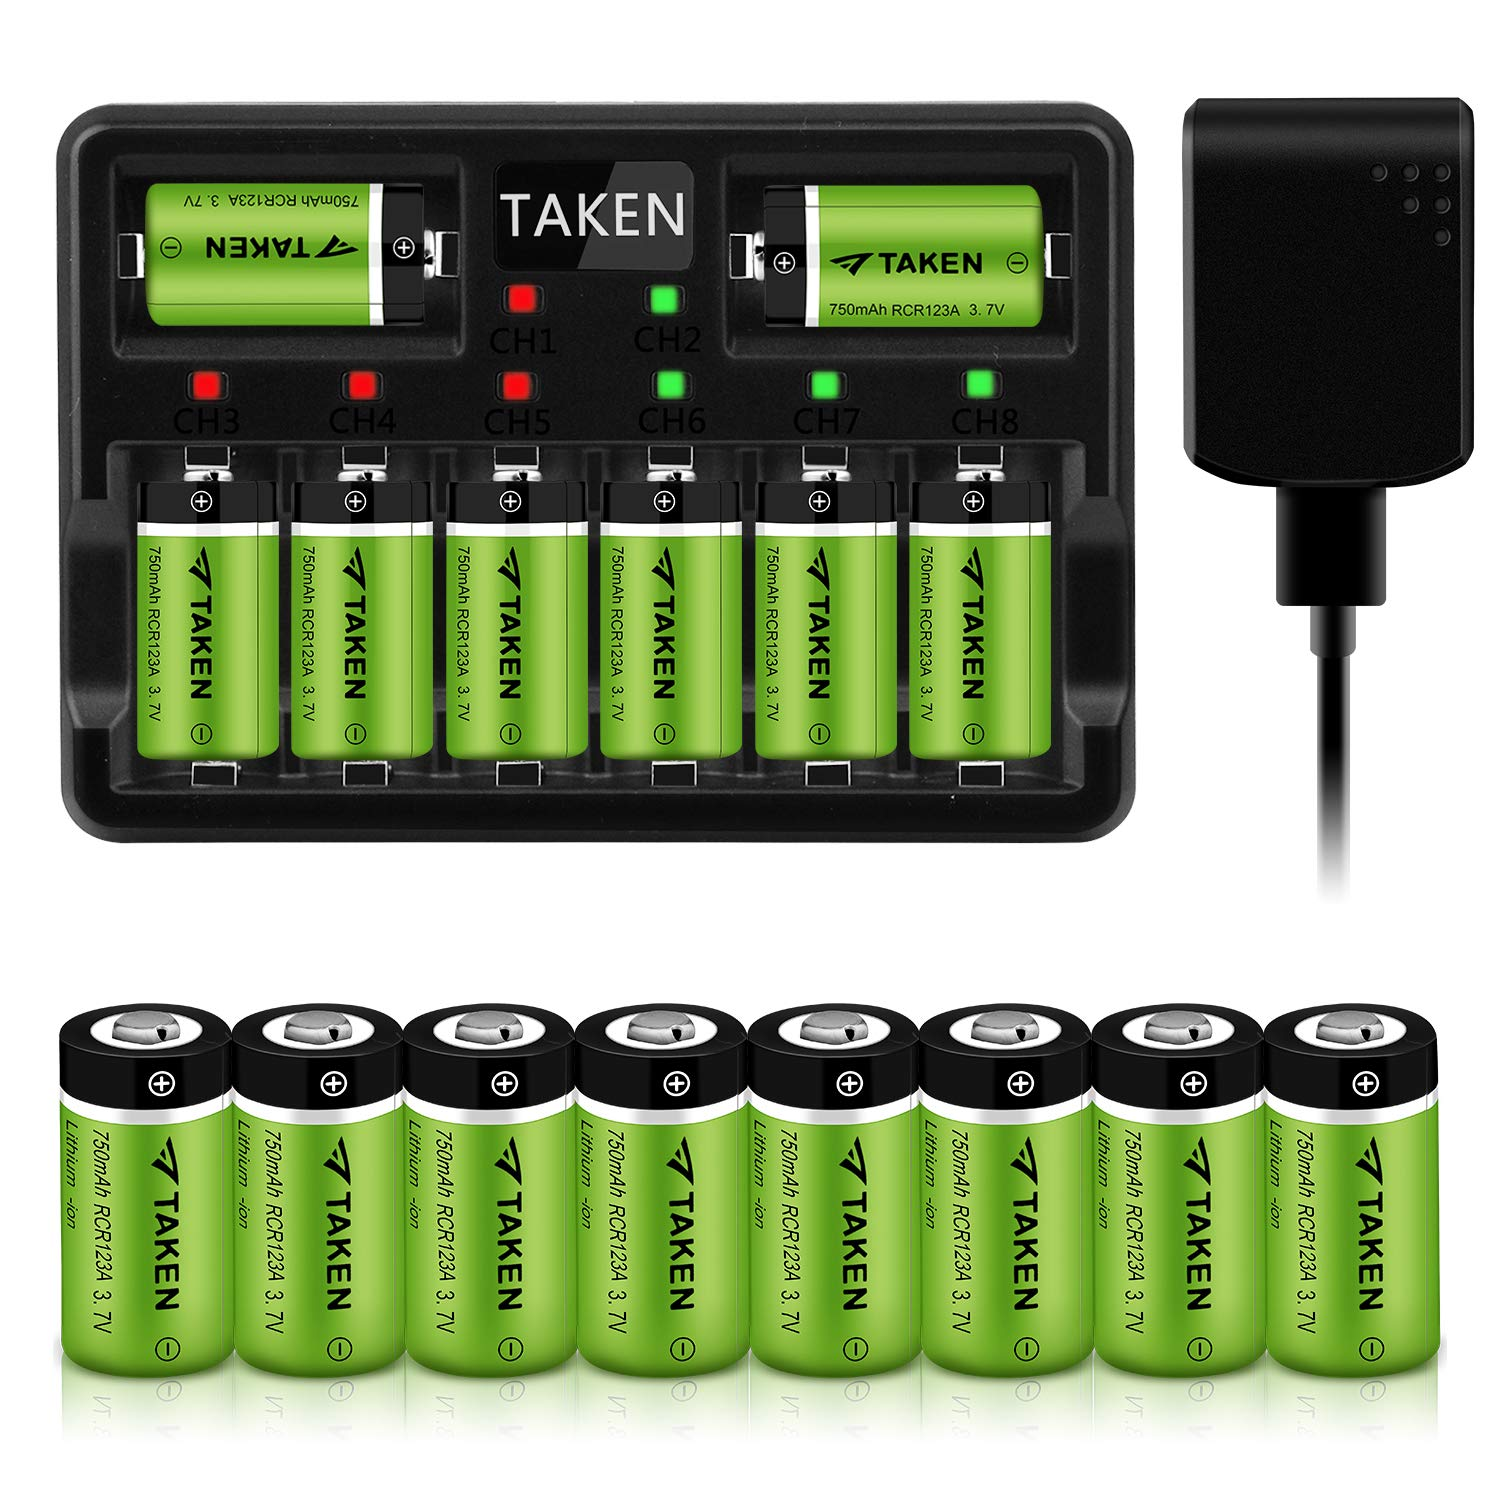 Taken CR123A Rechargeable Batteries, 3.7V 750mA Li-ion Rechargeable Batteries for Arlo Camera (VMC3030/VMK3200/VMS3330/3430/3530), 16 Pack CR123A Batteries with 8-Ports Charger by Taken one